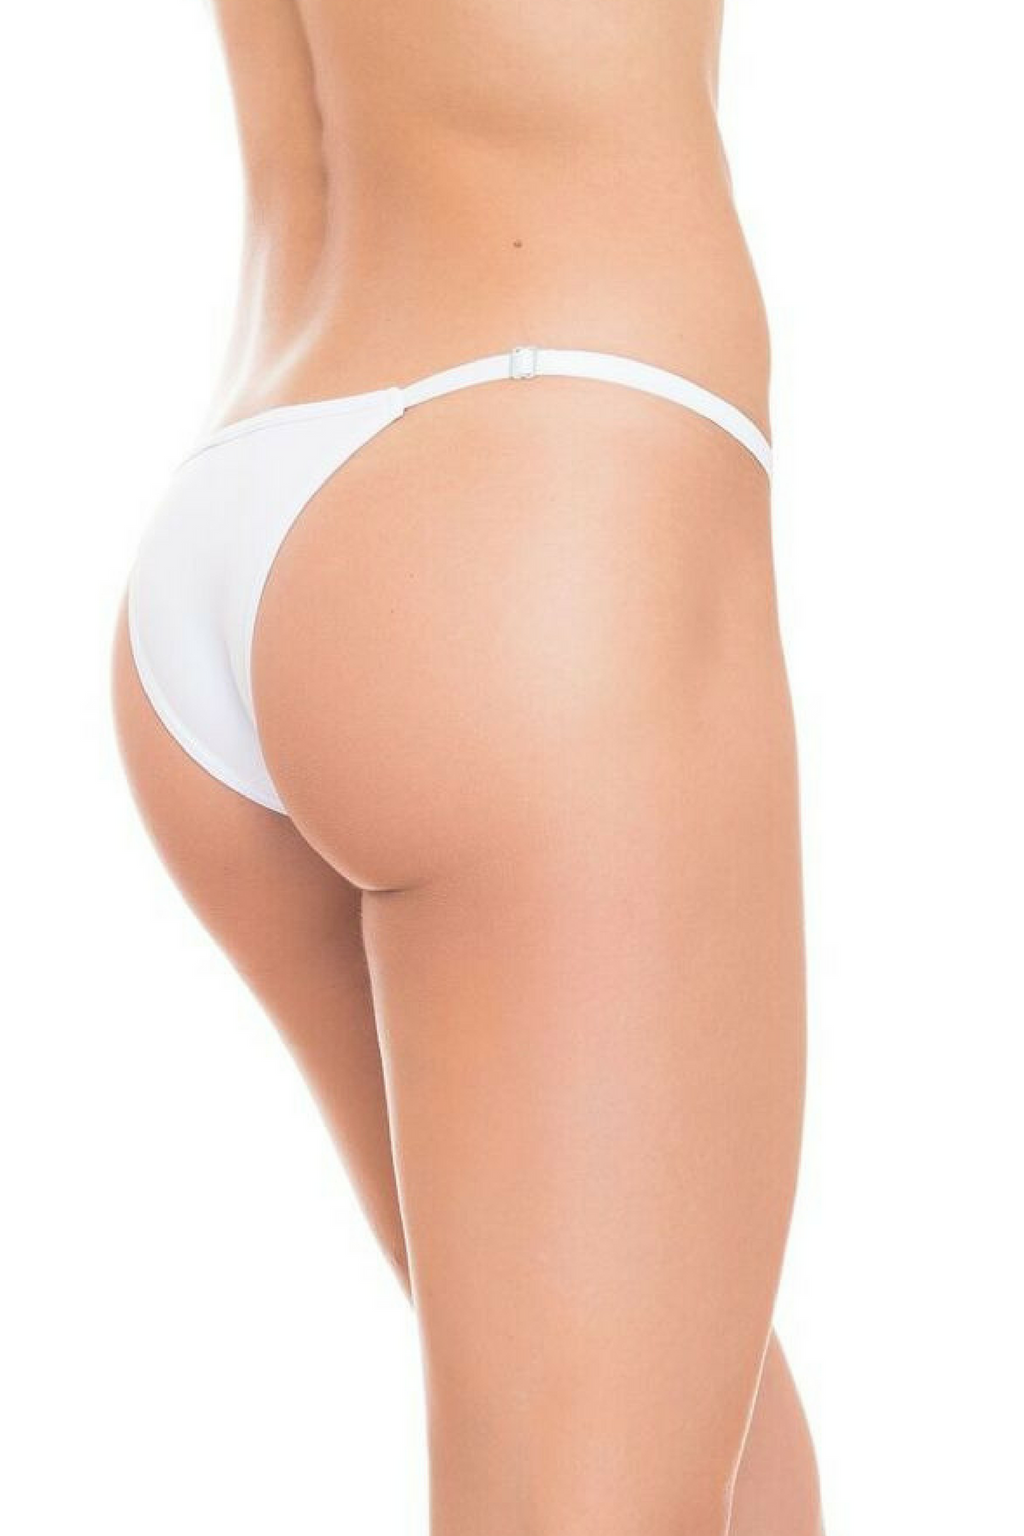 White String Bikini Cheeky Underwear